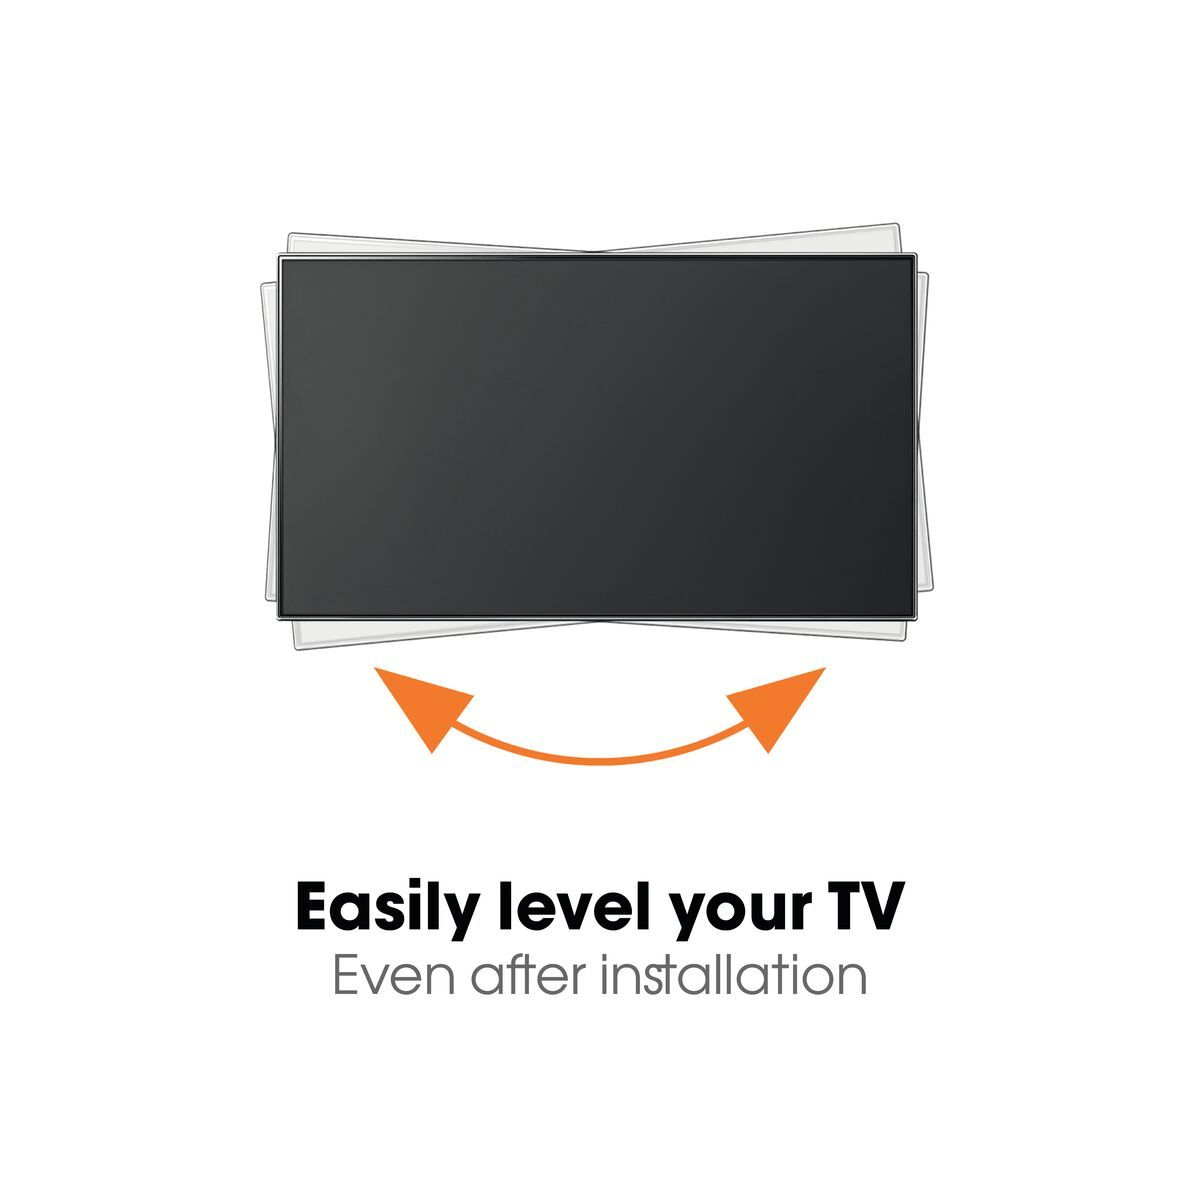 Vogel's WALL 3145 Full-Motion TV Wall Mount (white) - Suitable for 19 up to 43 inch TVs - Full motion (up to 180°) - Tilt -10°/+10° - USP